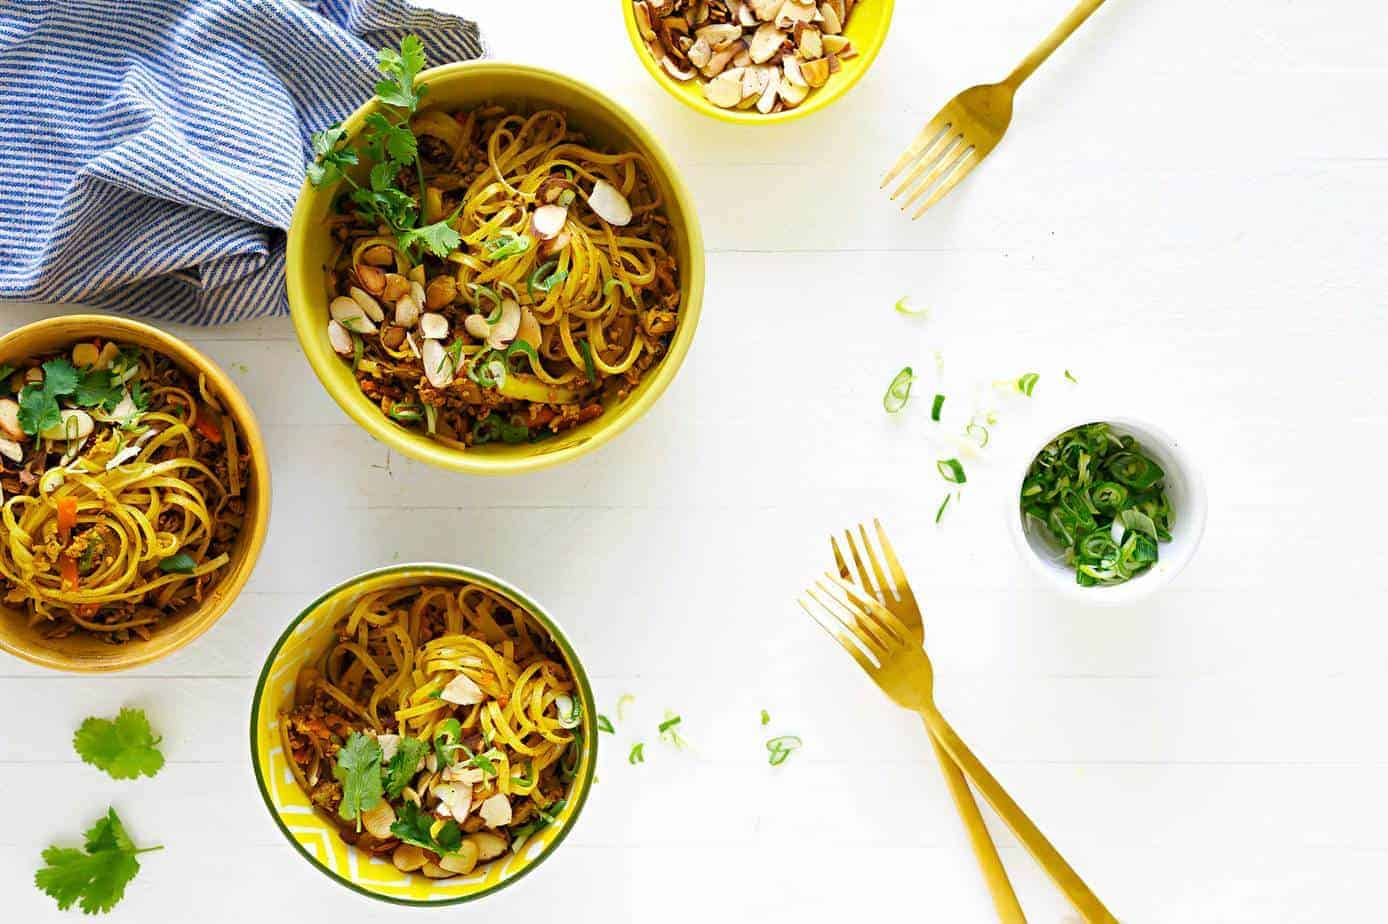 Pan-Fried Curry Noodles (or Curried Pad Thai) Recipe (via thepigandquill.com) #glutenfree #vegetarian #plantbased